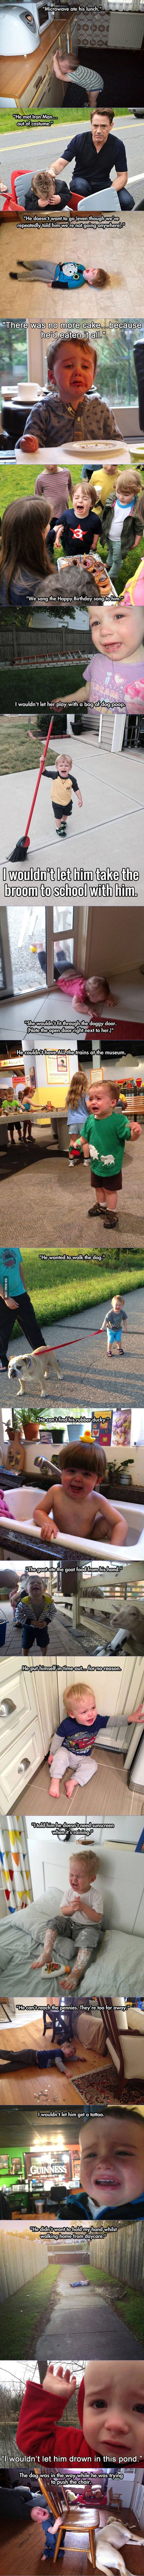 Kids Crying For The Funniest Reasons Ever. That first dog looks embarrassed.